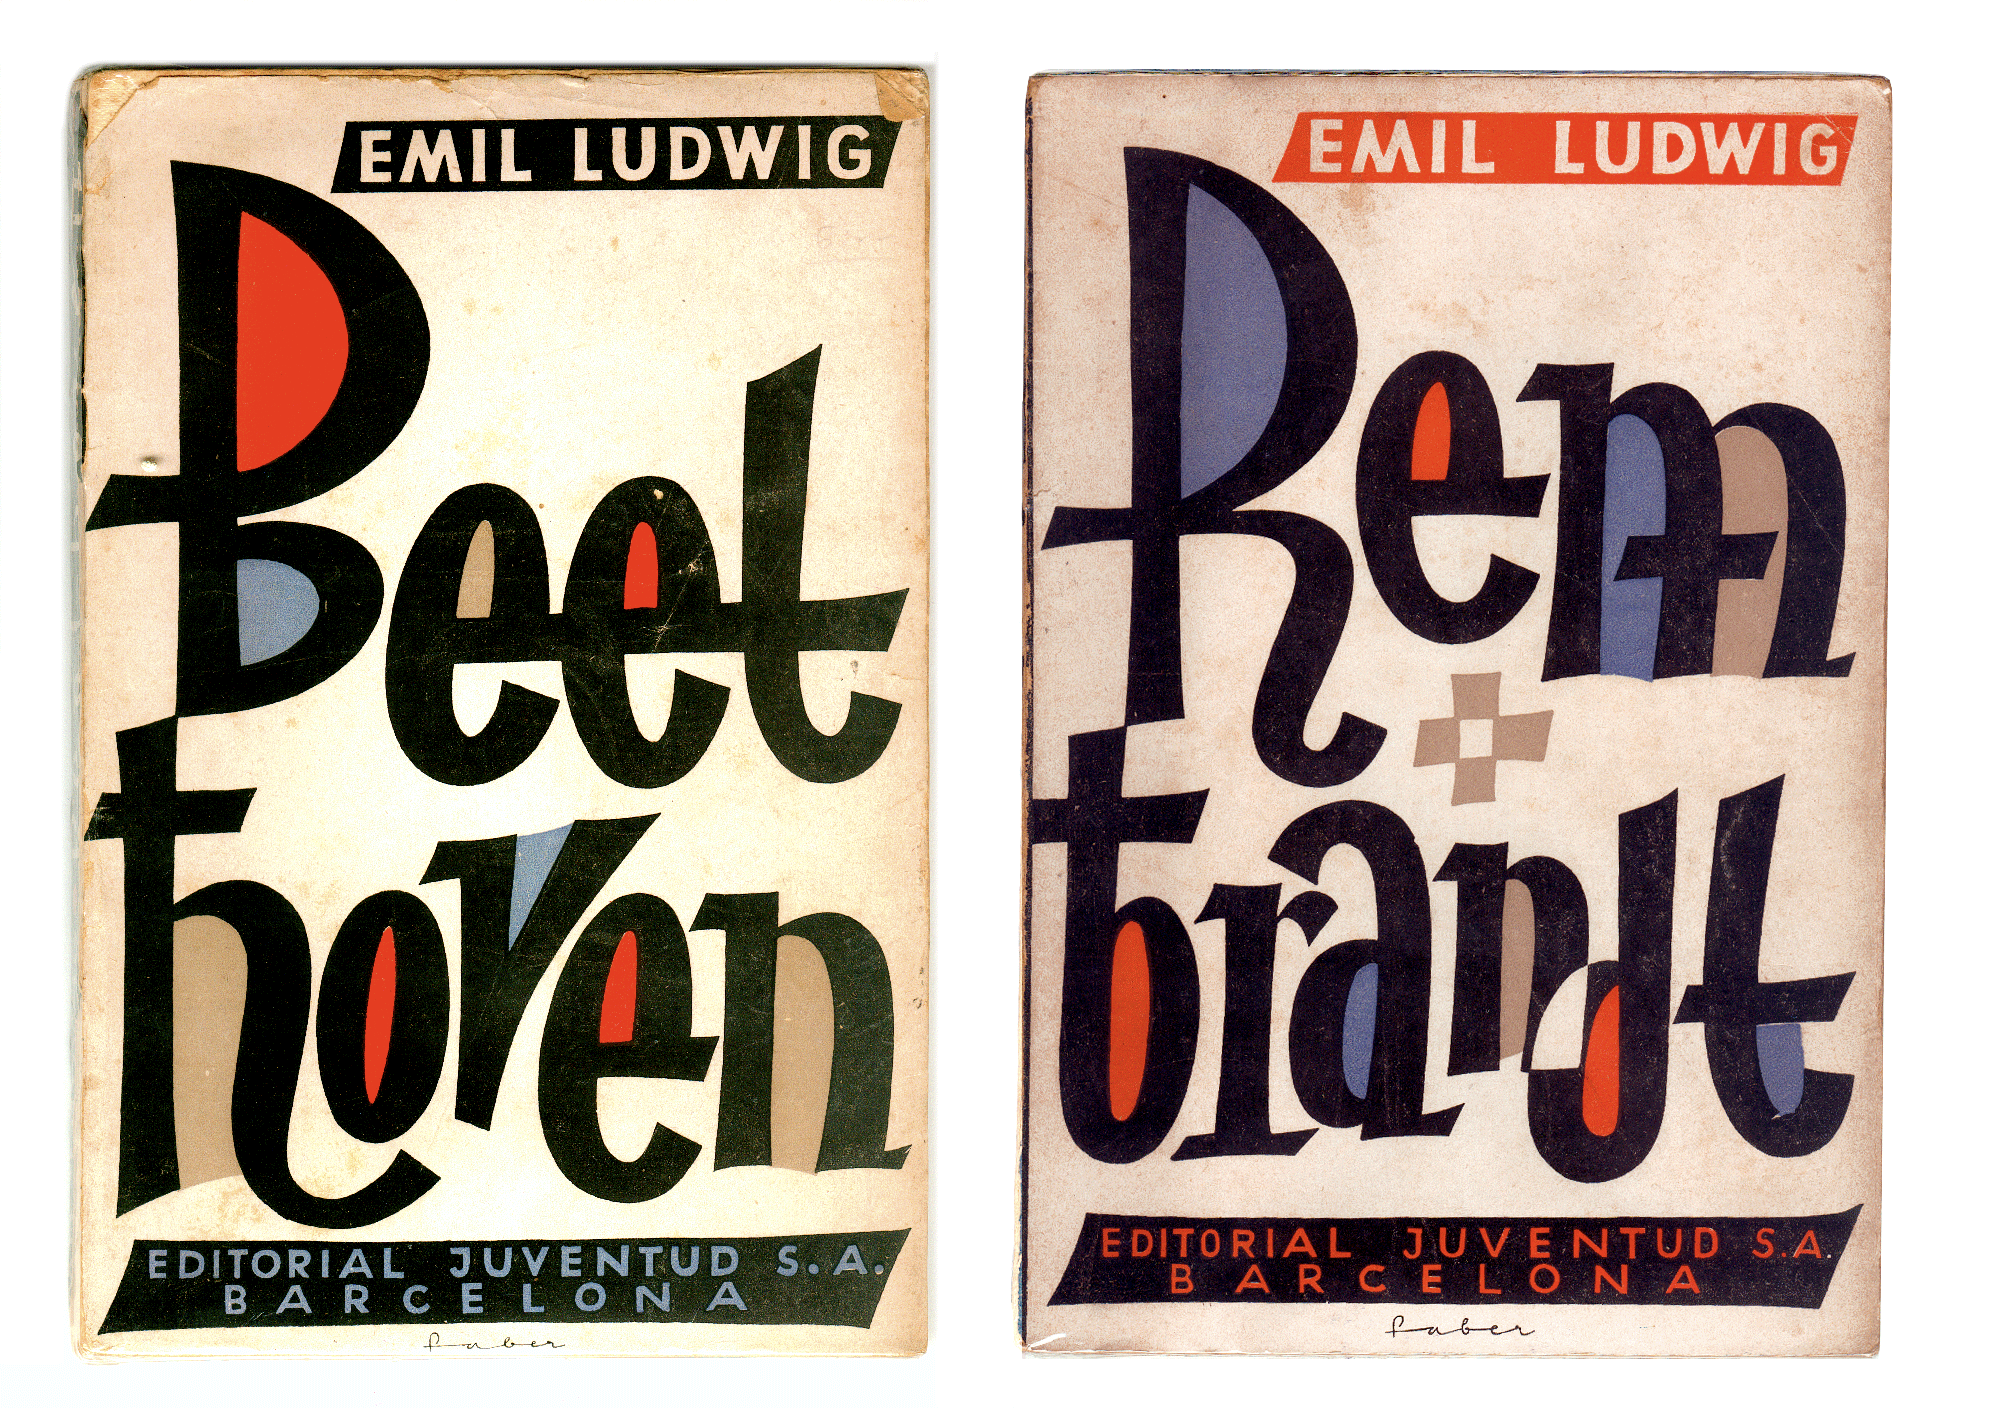 1968_Faber_Beethoven+Rembrand